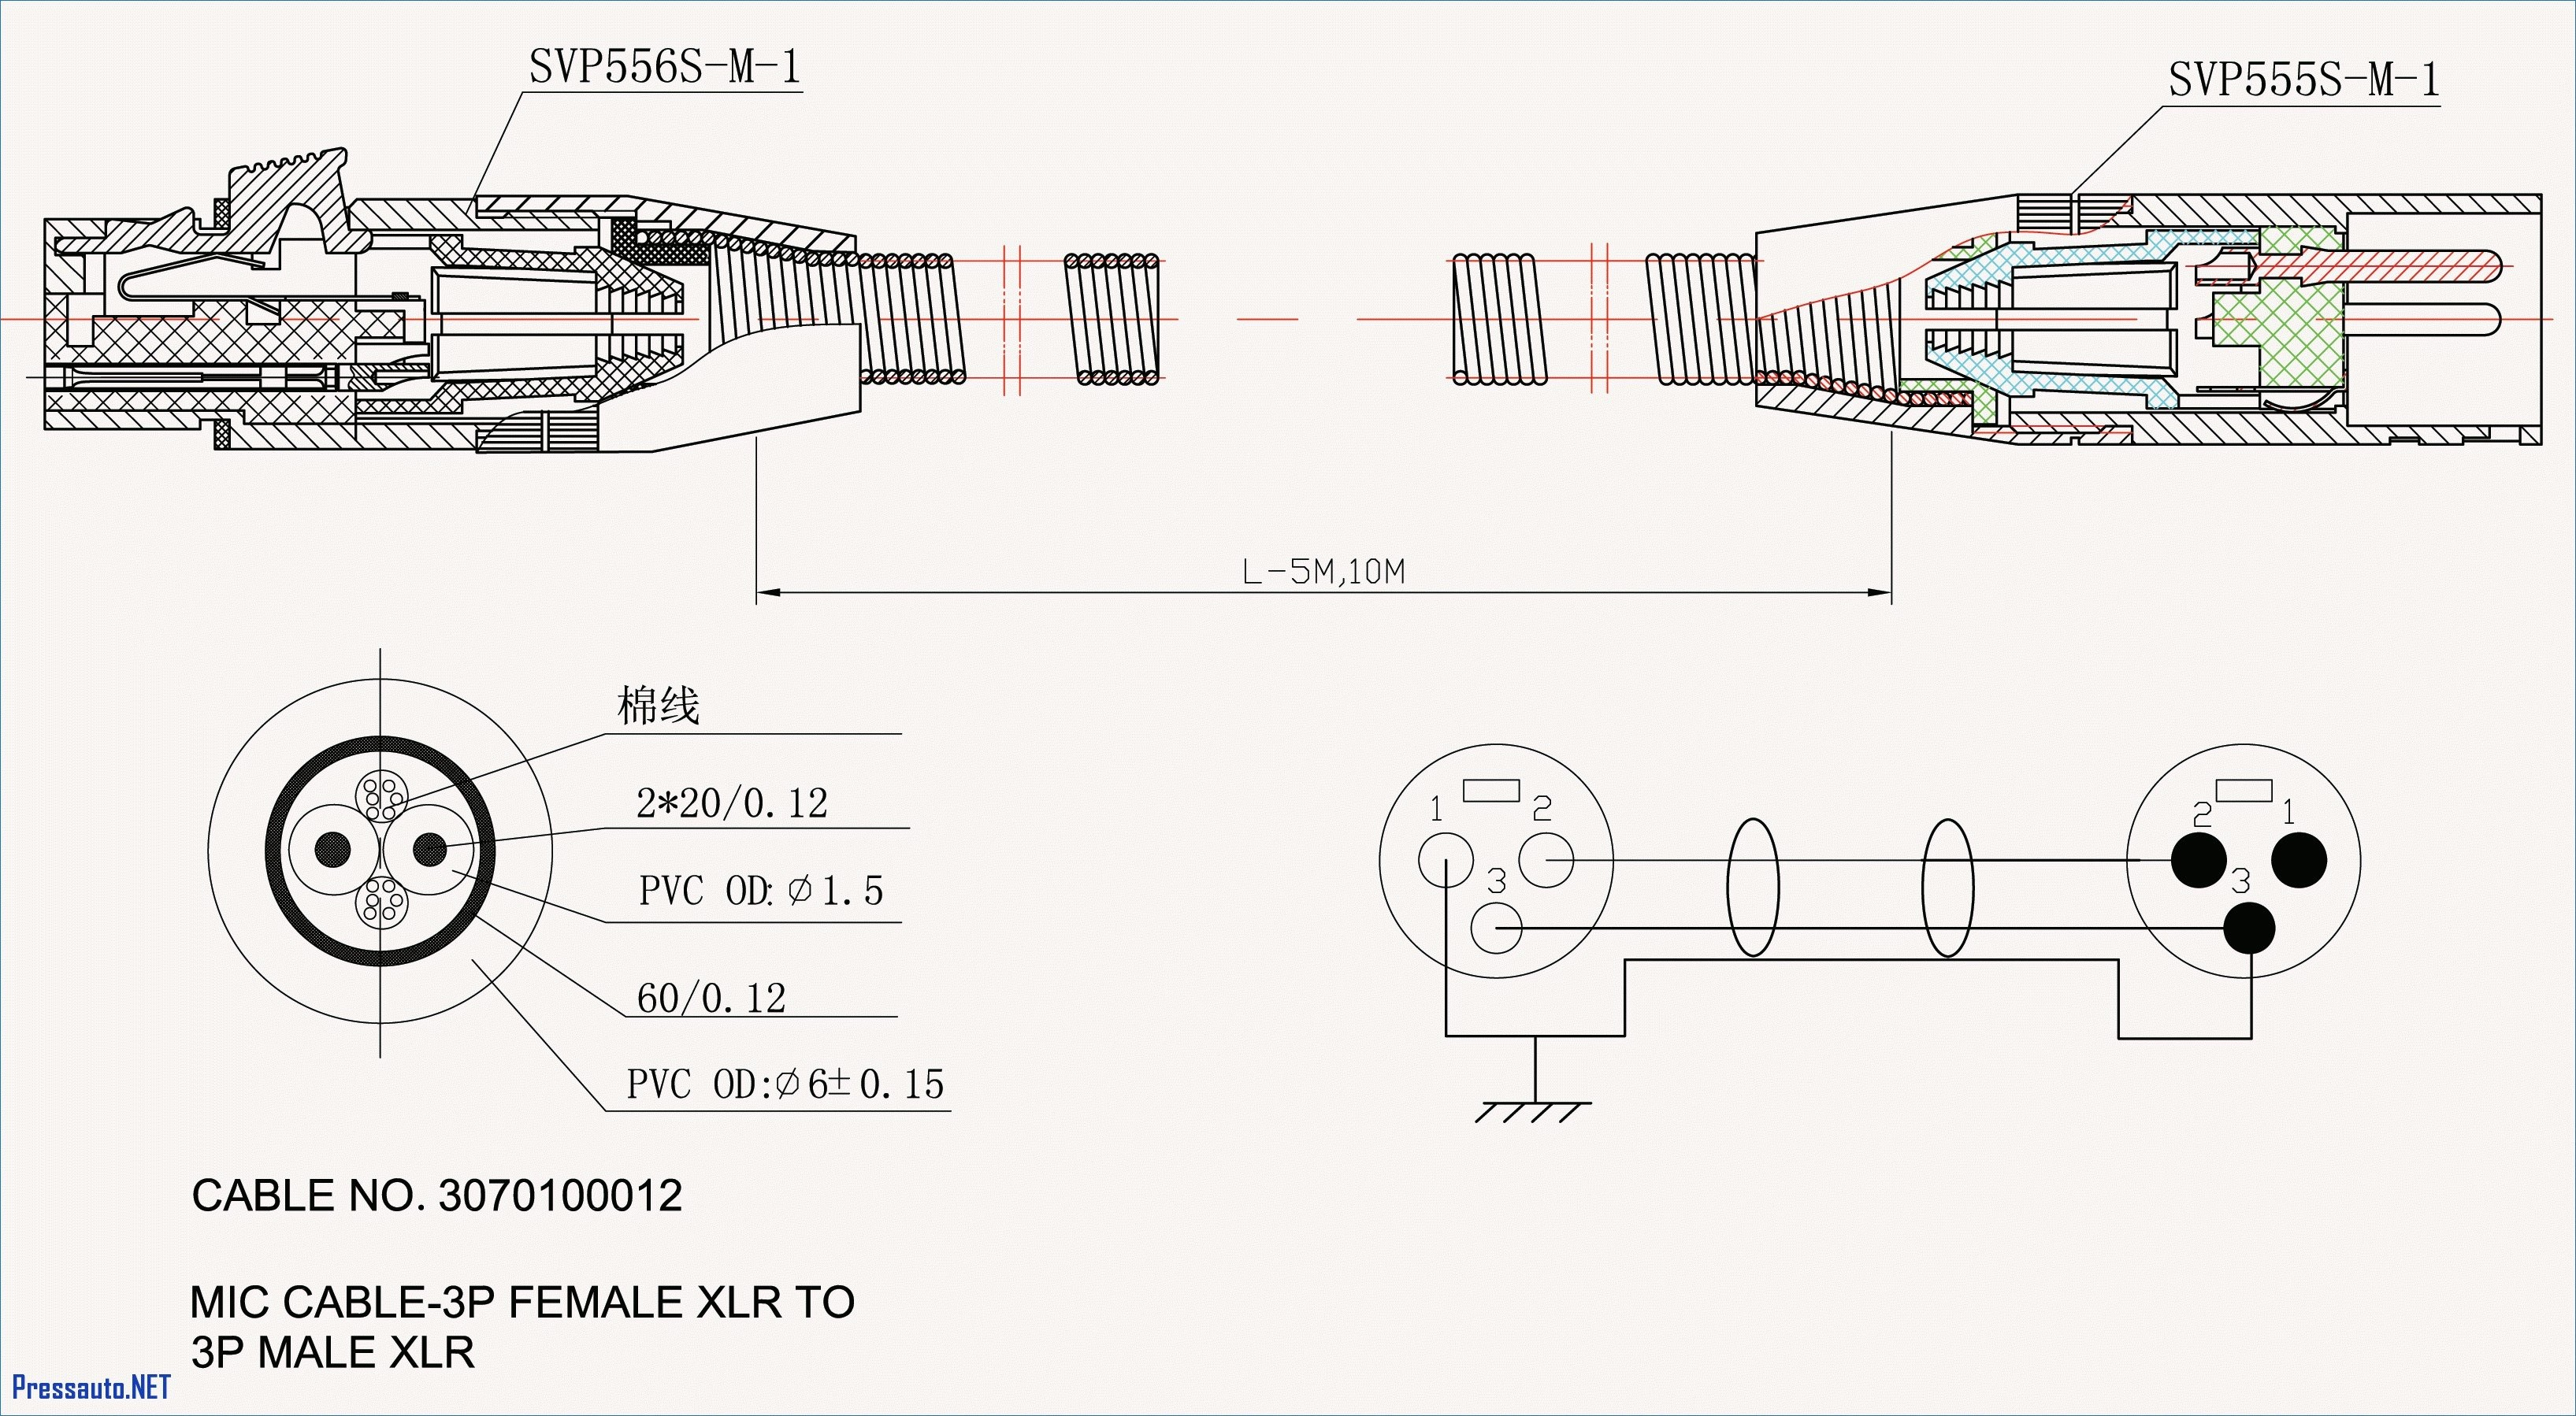 220 to 110 Wiring Diagram Awesome Wiring Diagram for Cat5 Cable Beautiful 3 Wire Microphone Wiring